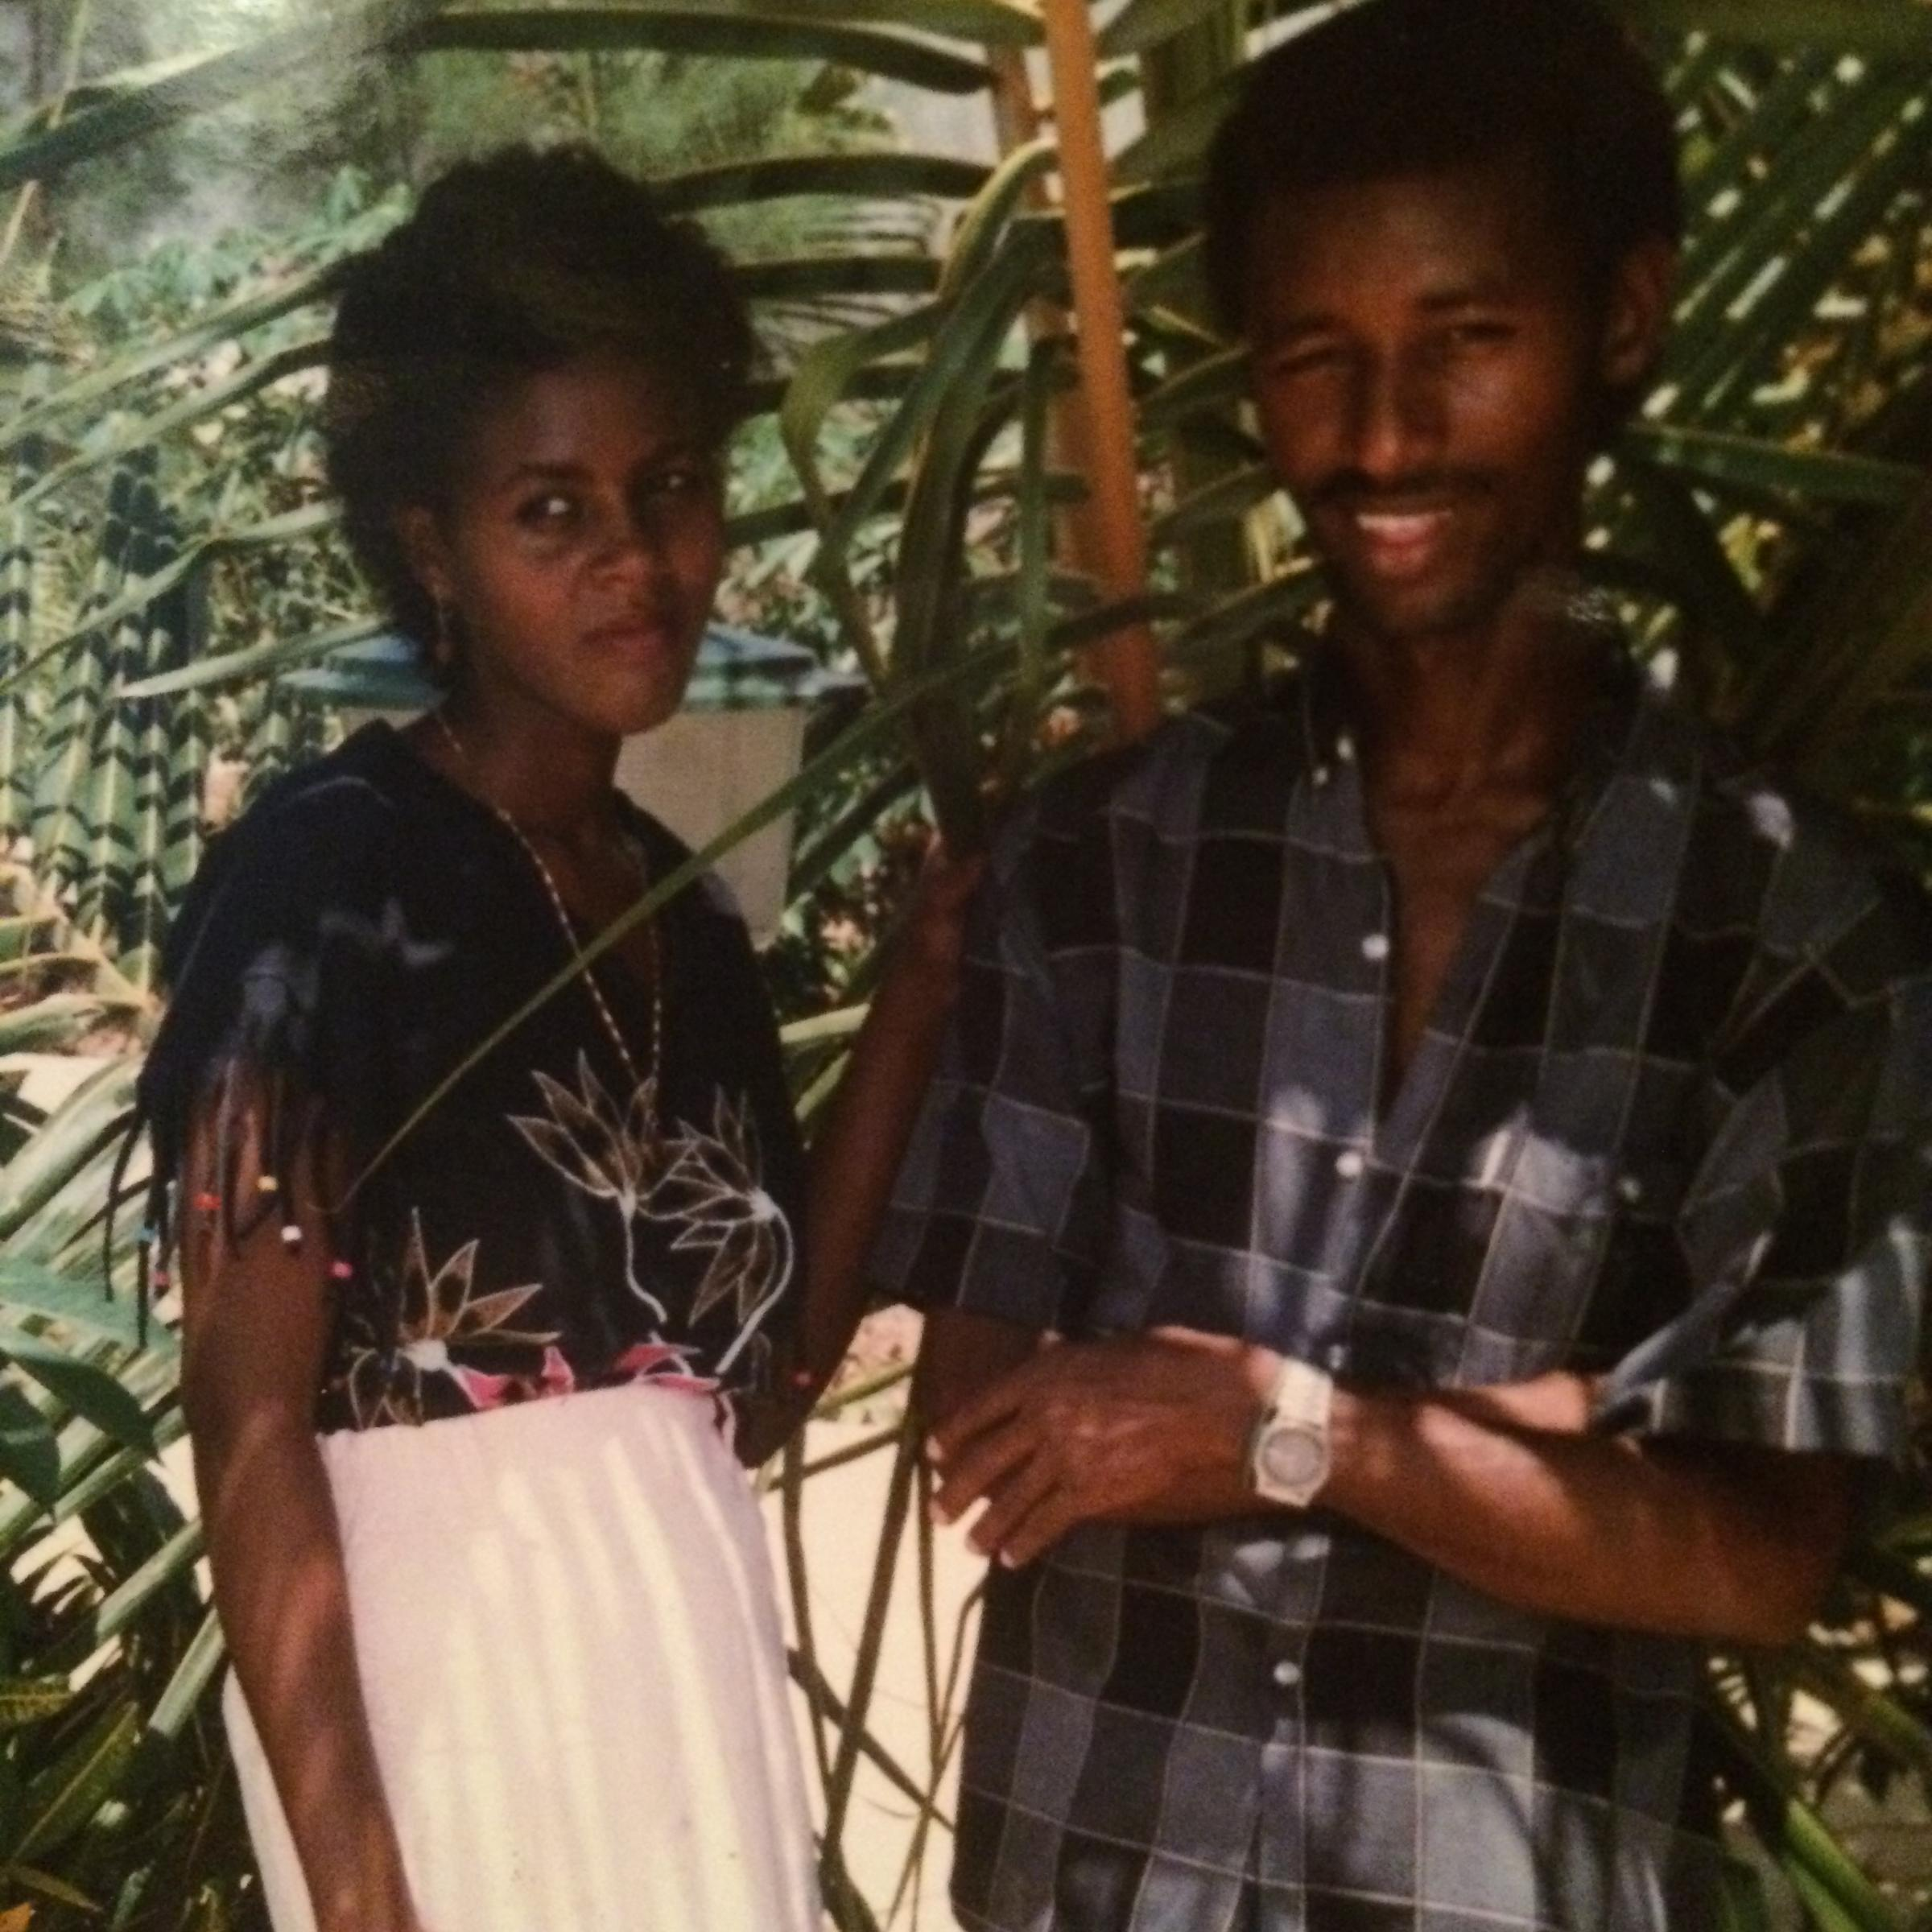 Caption: The author's parents, Fetiha Omer and Abdul-Basit Hassan, in Somalia., Credit: Courtesy of Zubeyda Ahmed